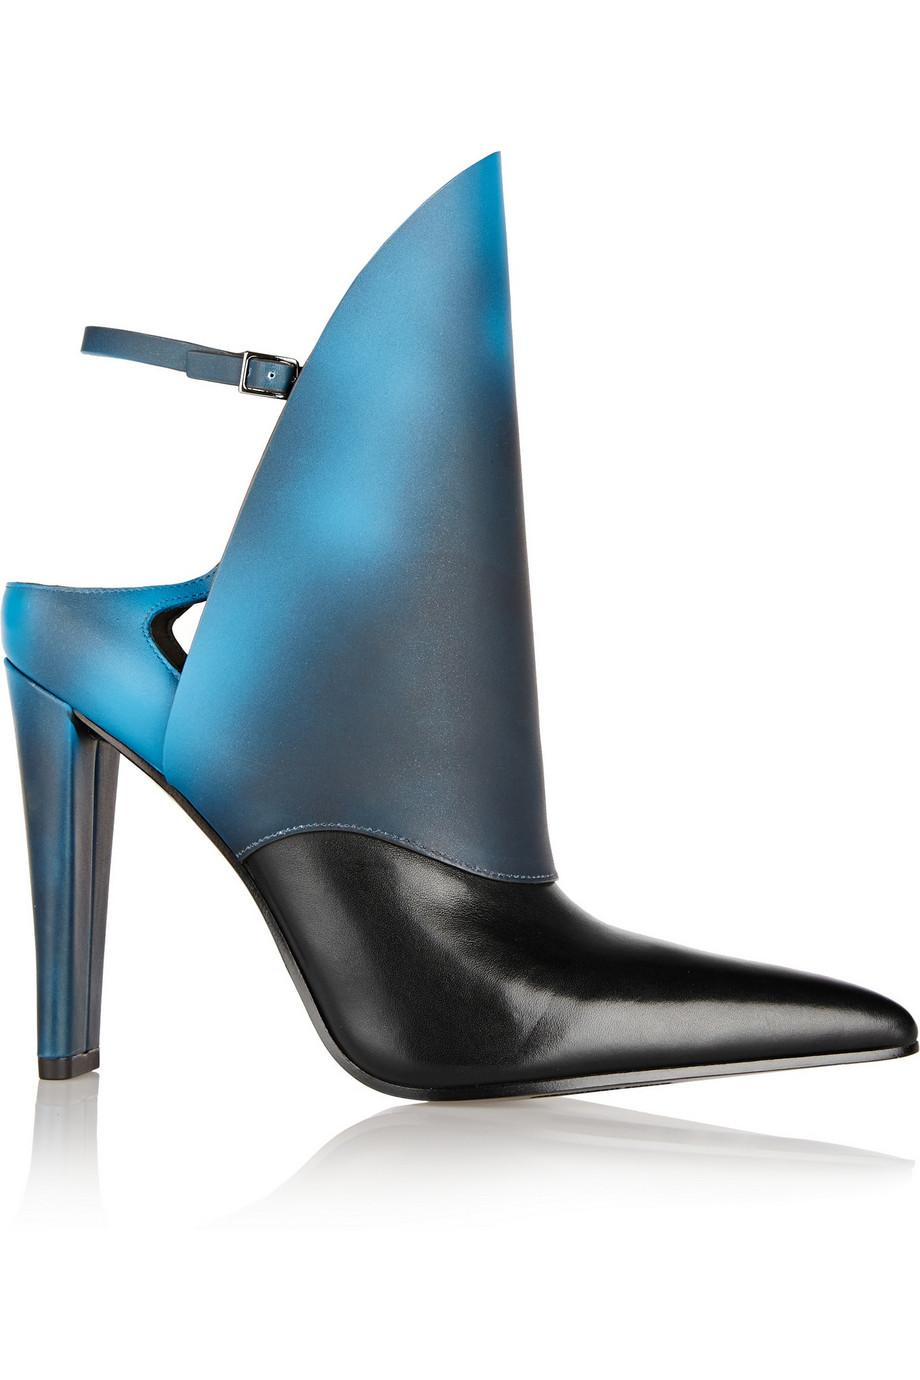 ALEXANDER WANG Lys Heat-Tech Leather Ankle Boots in Blue